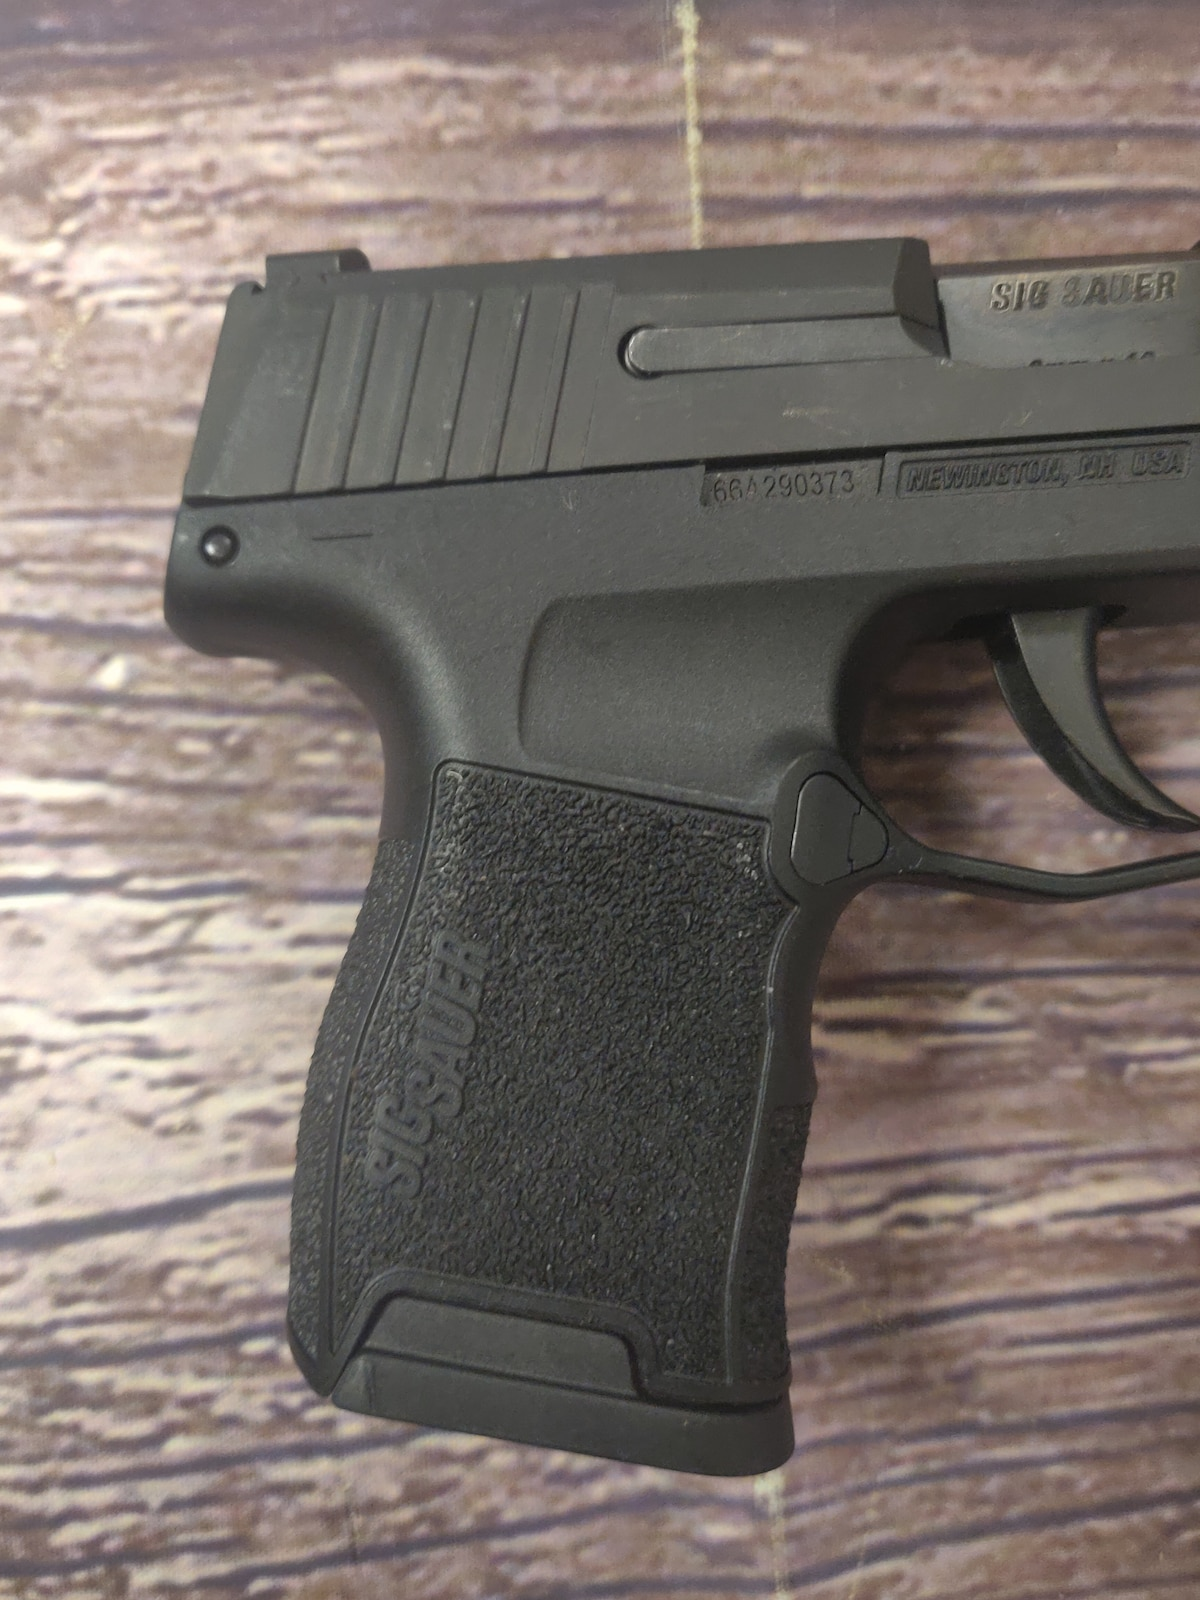 SIG SAUER p365 with Night Sights